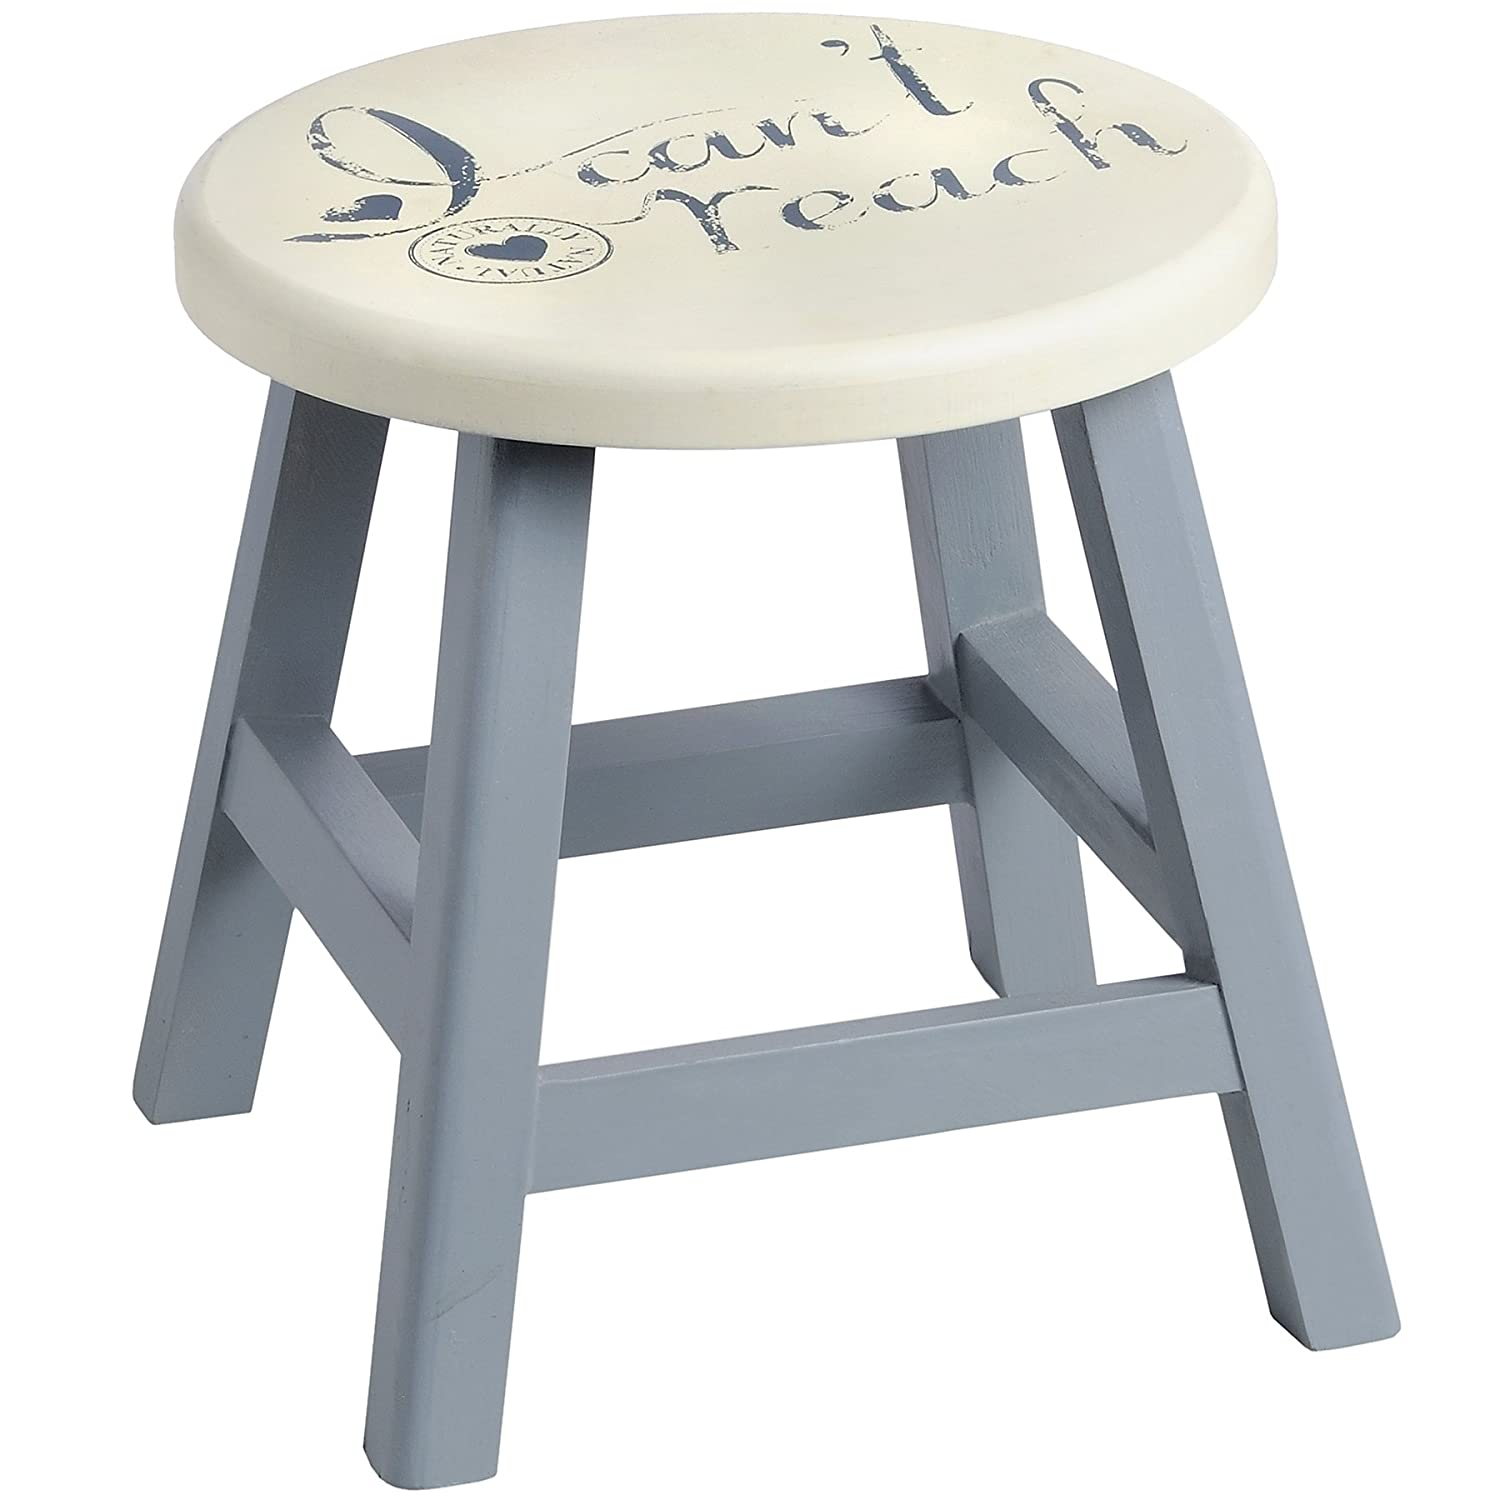 I Can\'t Reach Step Stool: Amazon.co.uk: Kitchen & Home